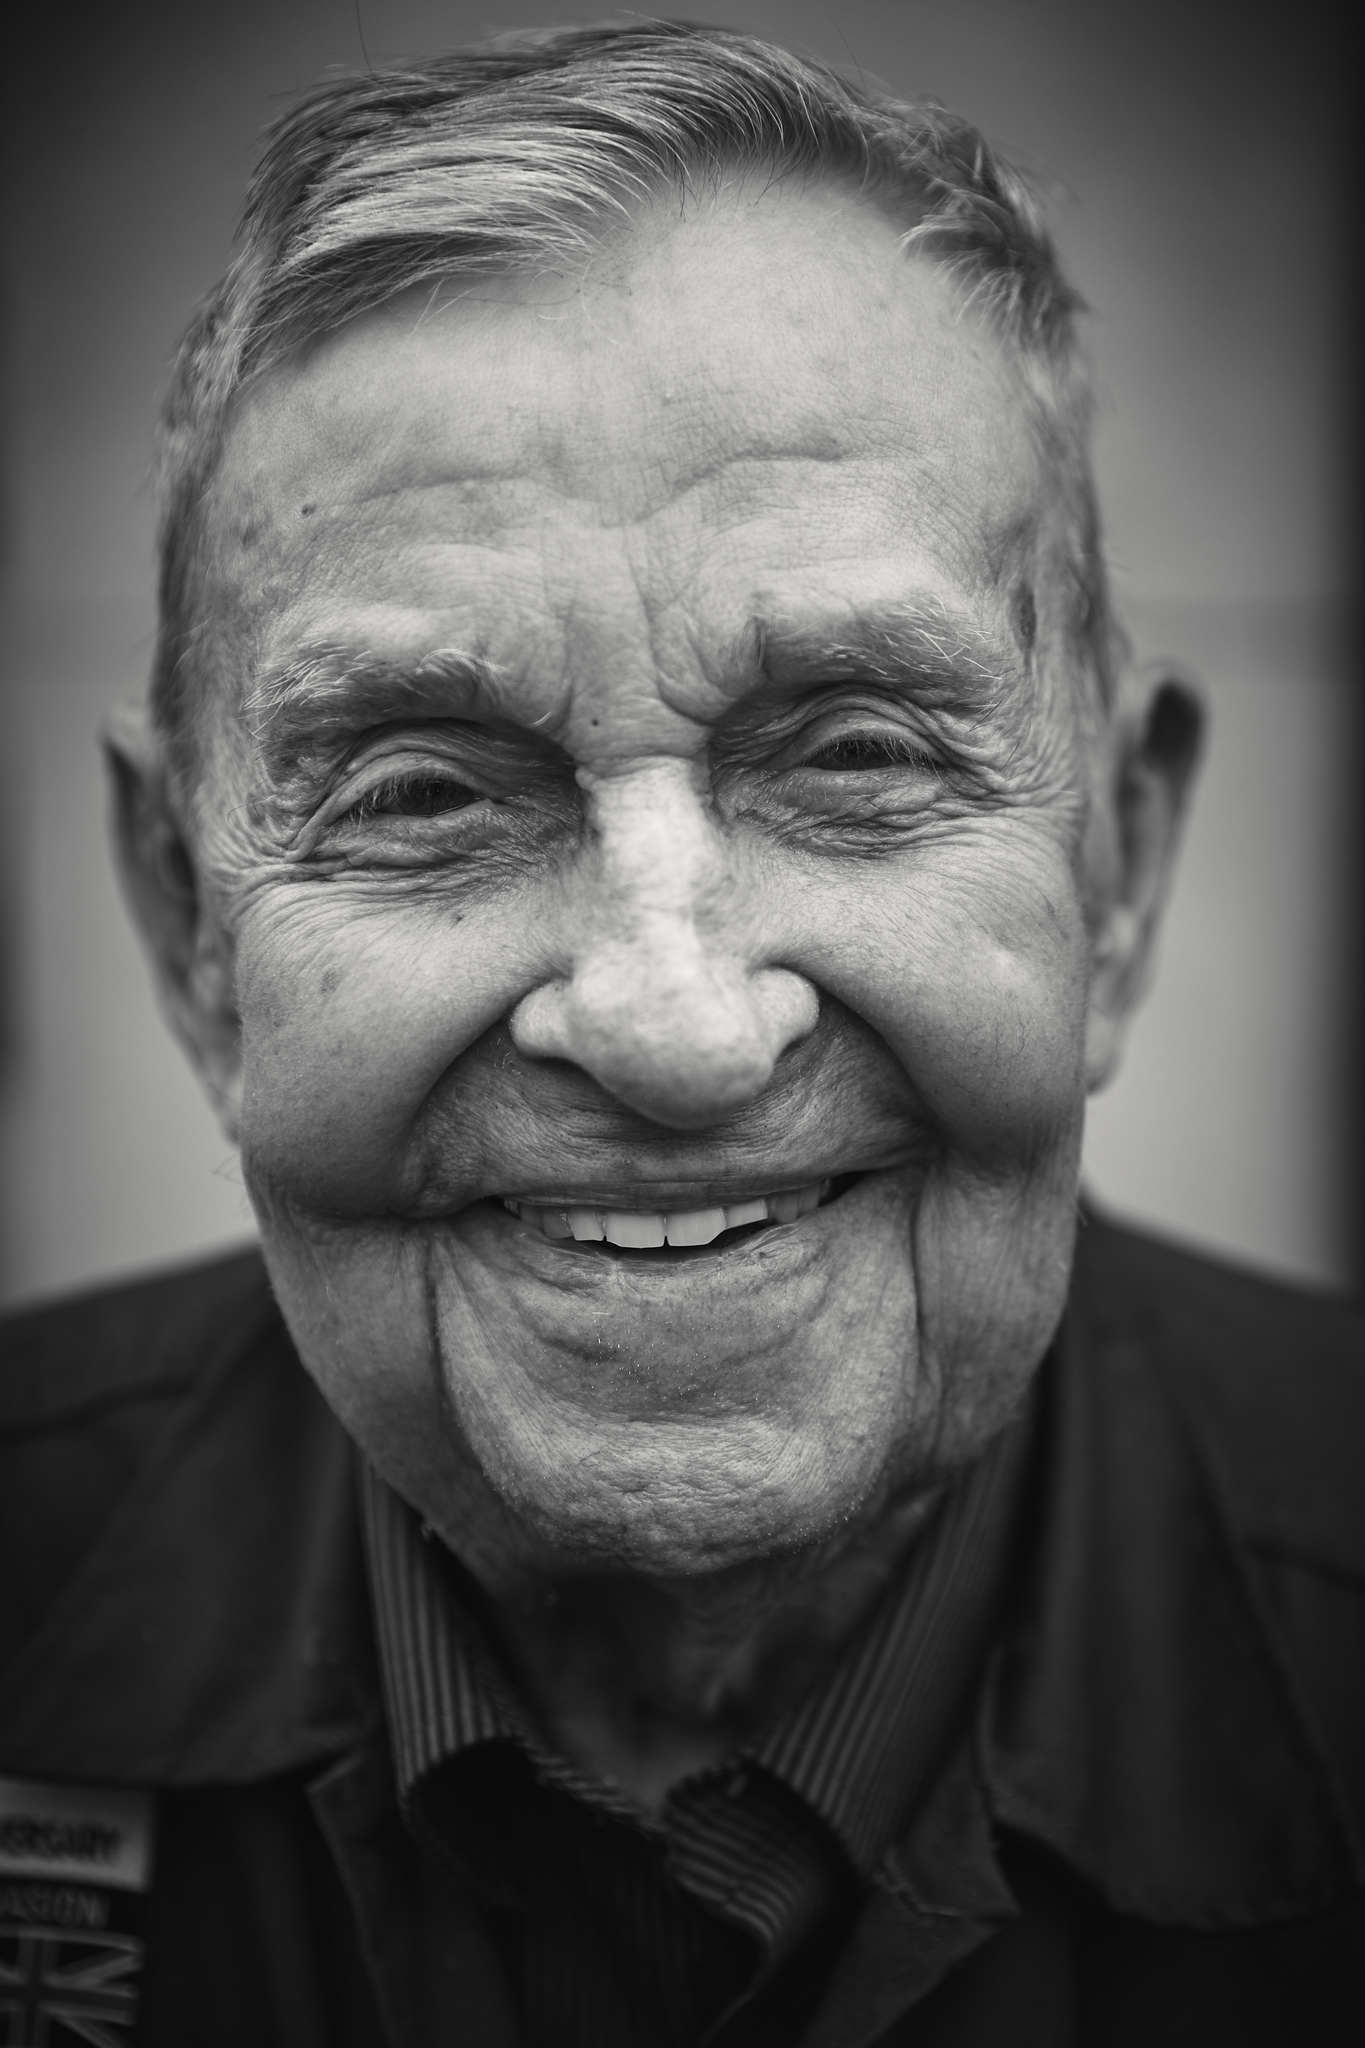 D-DAY VETERANS, FRANCE - JUNE 5: K.T Robbins (98 yrs old), from Mississippi, a former member of the